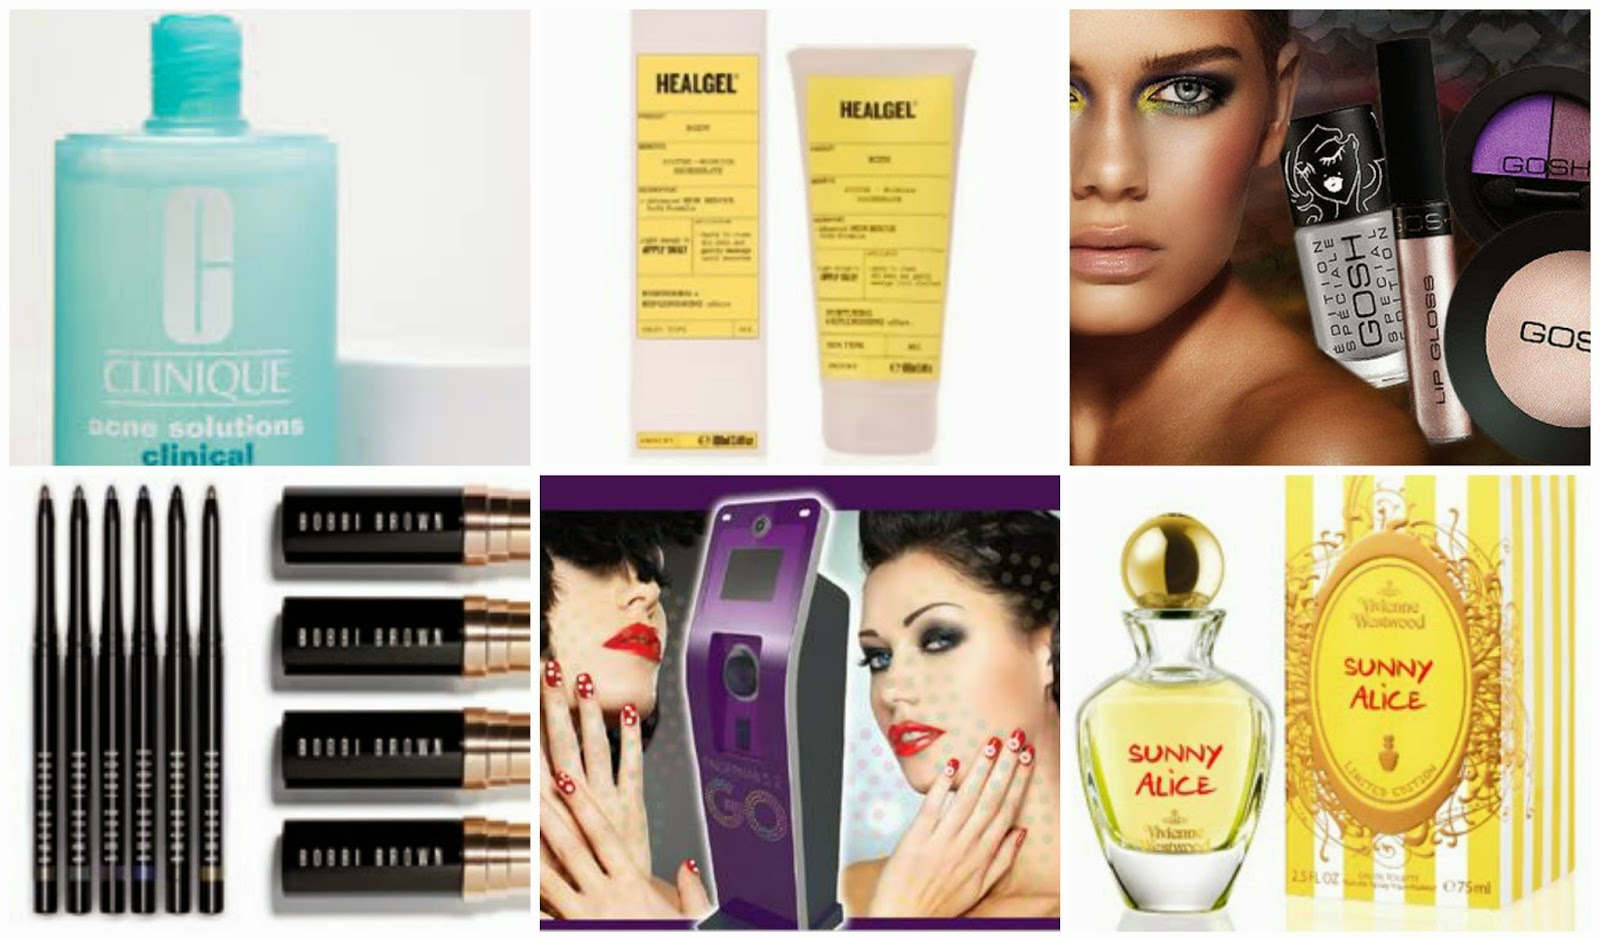 The Daily Beauty Report (13.03.14)